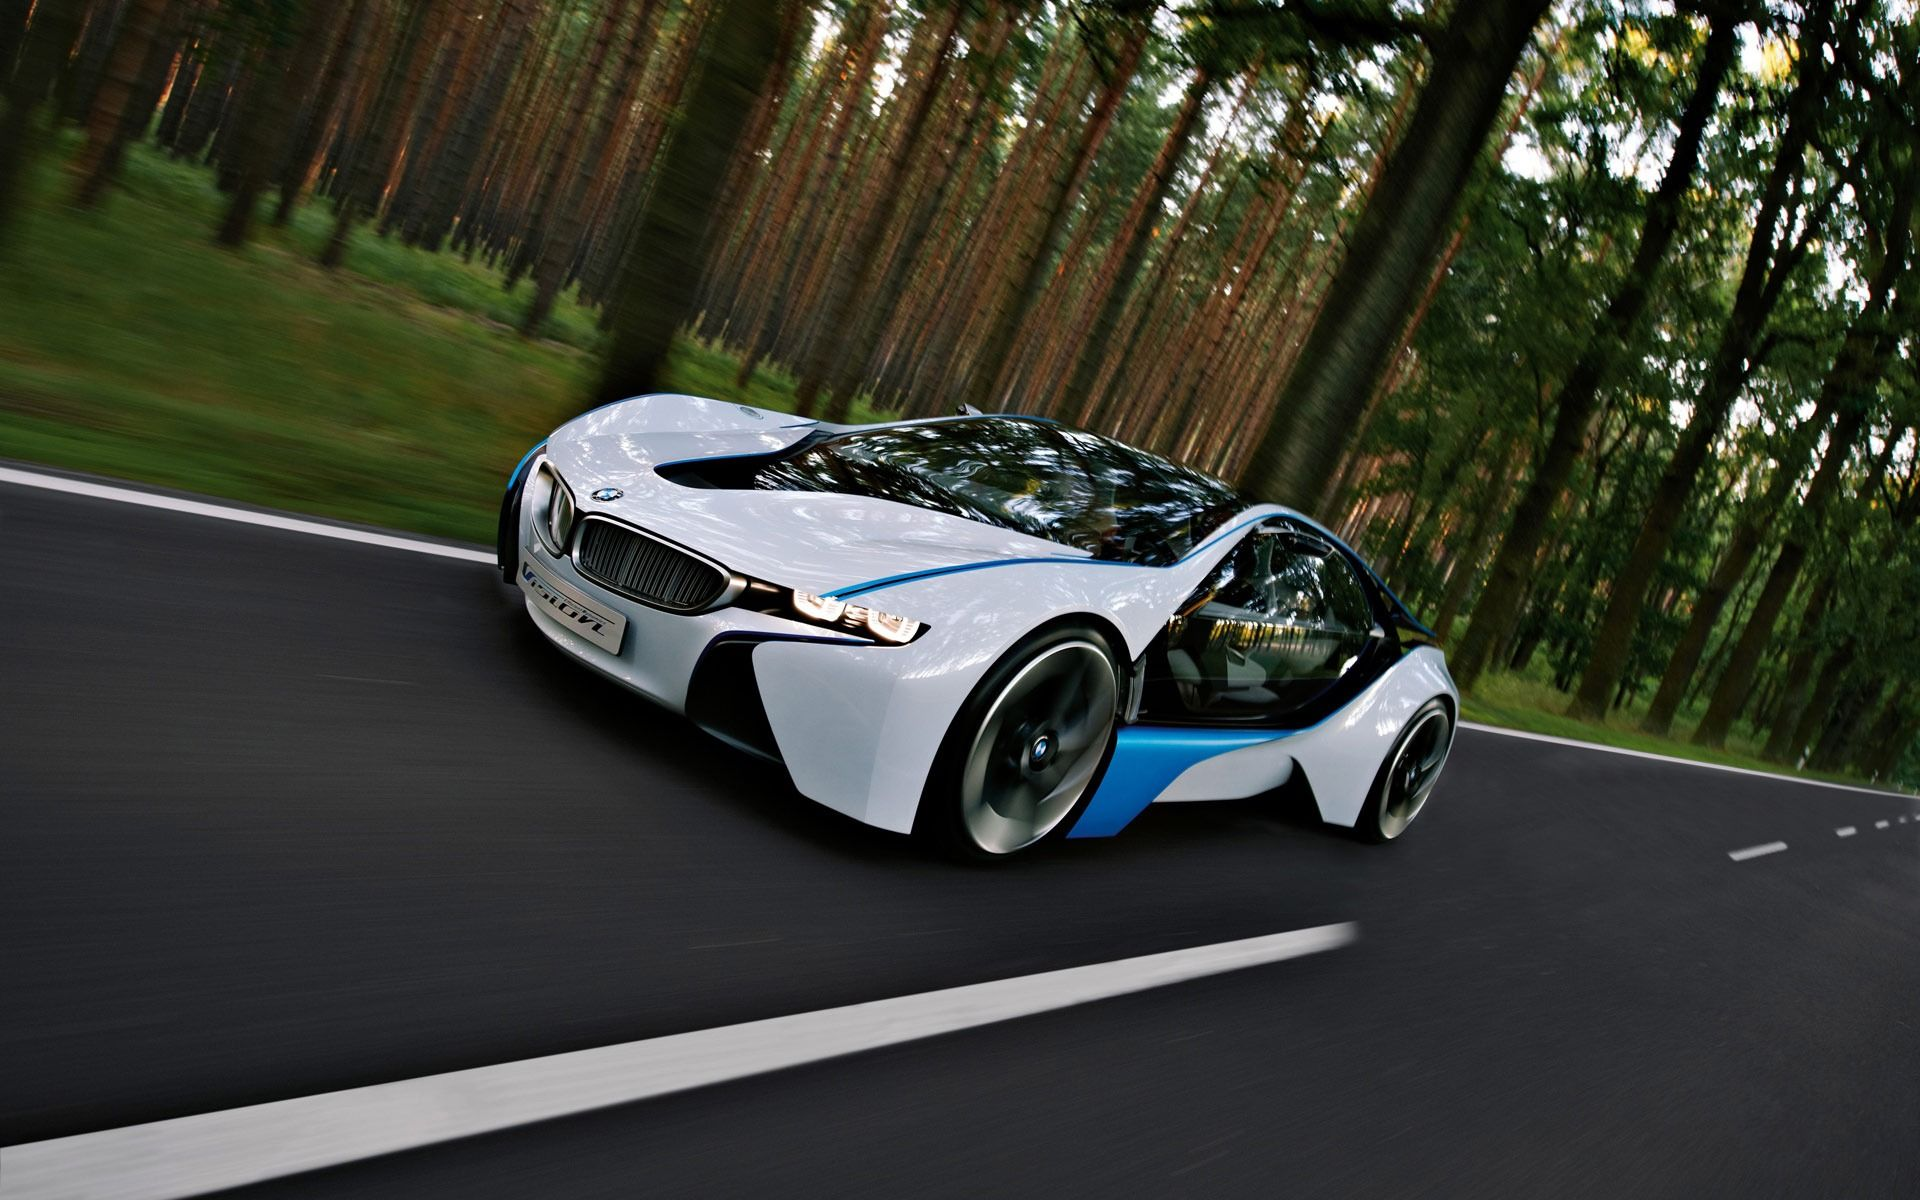 Bmw Cars Wallpapers Hd Free Download Poto Butut